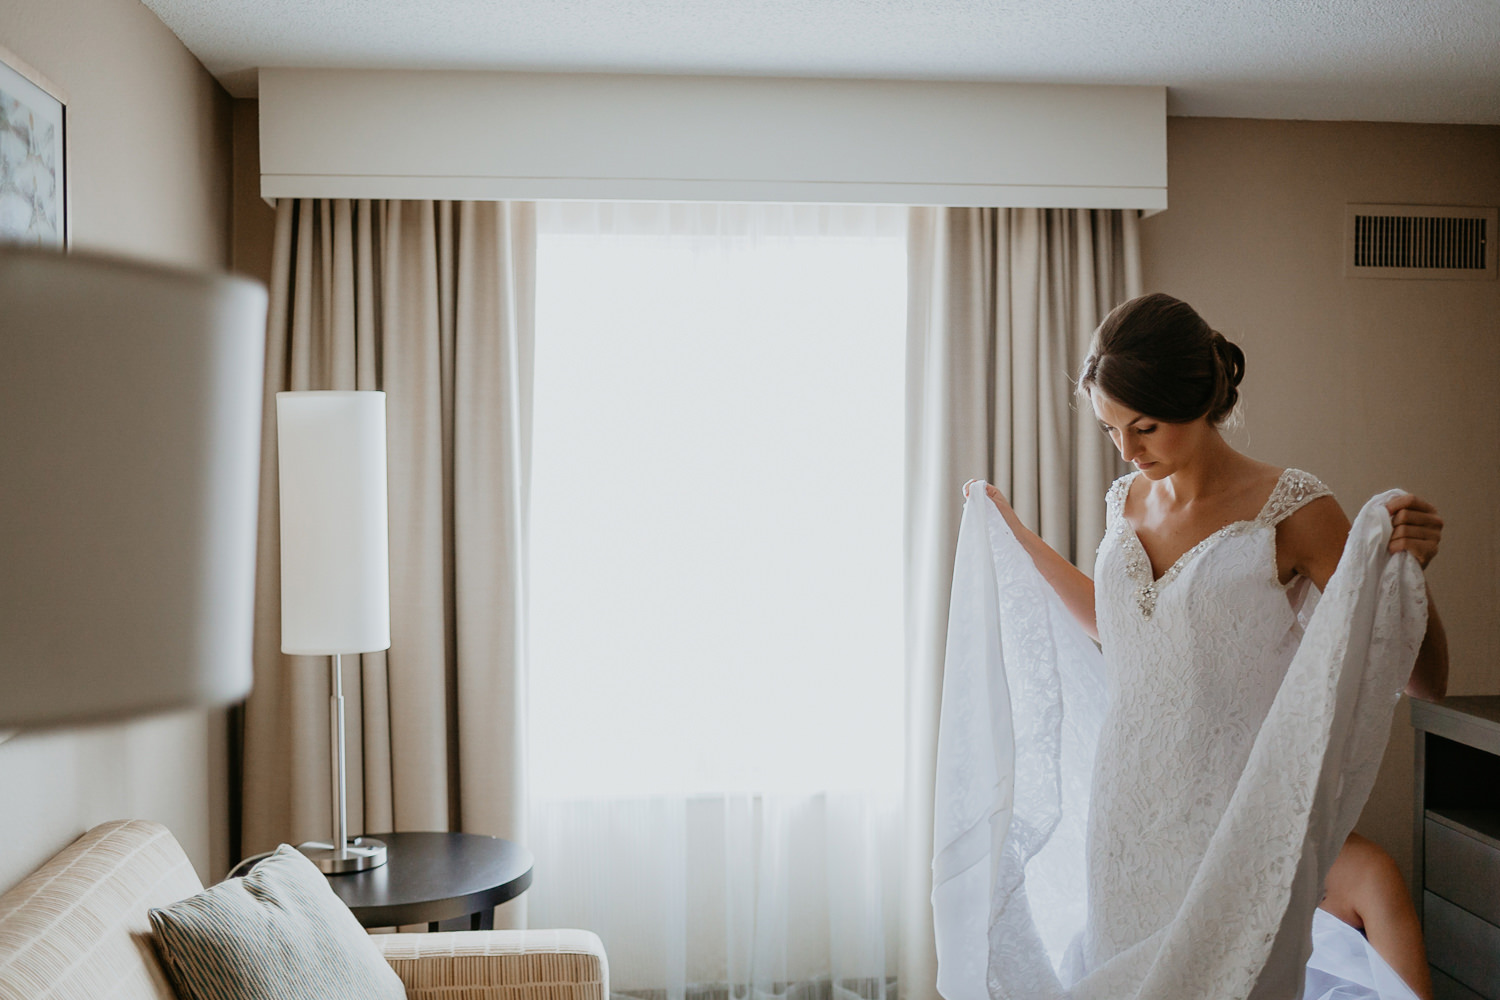 bride next to hotel window holding up her dress from the sides